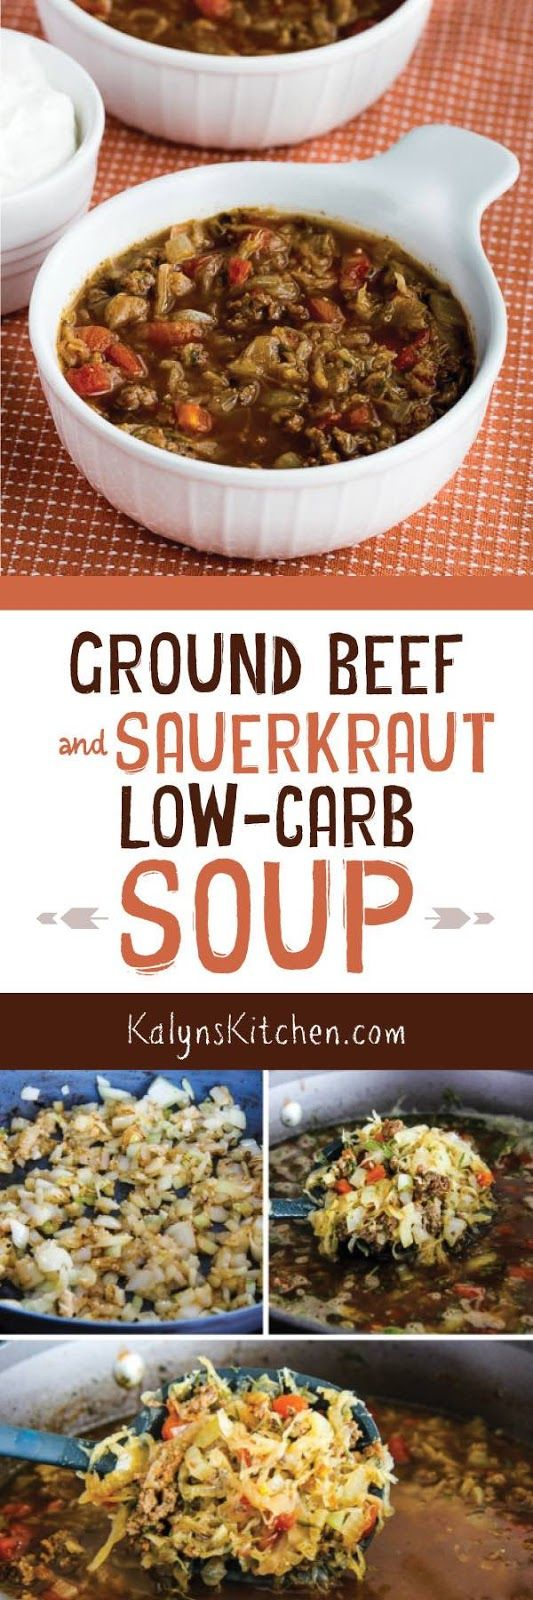 Ground Beef and Sauerkraut Low-Carb Soup is one of my favorites I make every January, and this delicious soup is also gluten-free and low-glycemic. Don't be afraid of the sauerkraut; it gets sweet and delicious as the soup cooks. [found on KalynsKitchen.com]